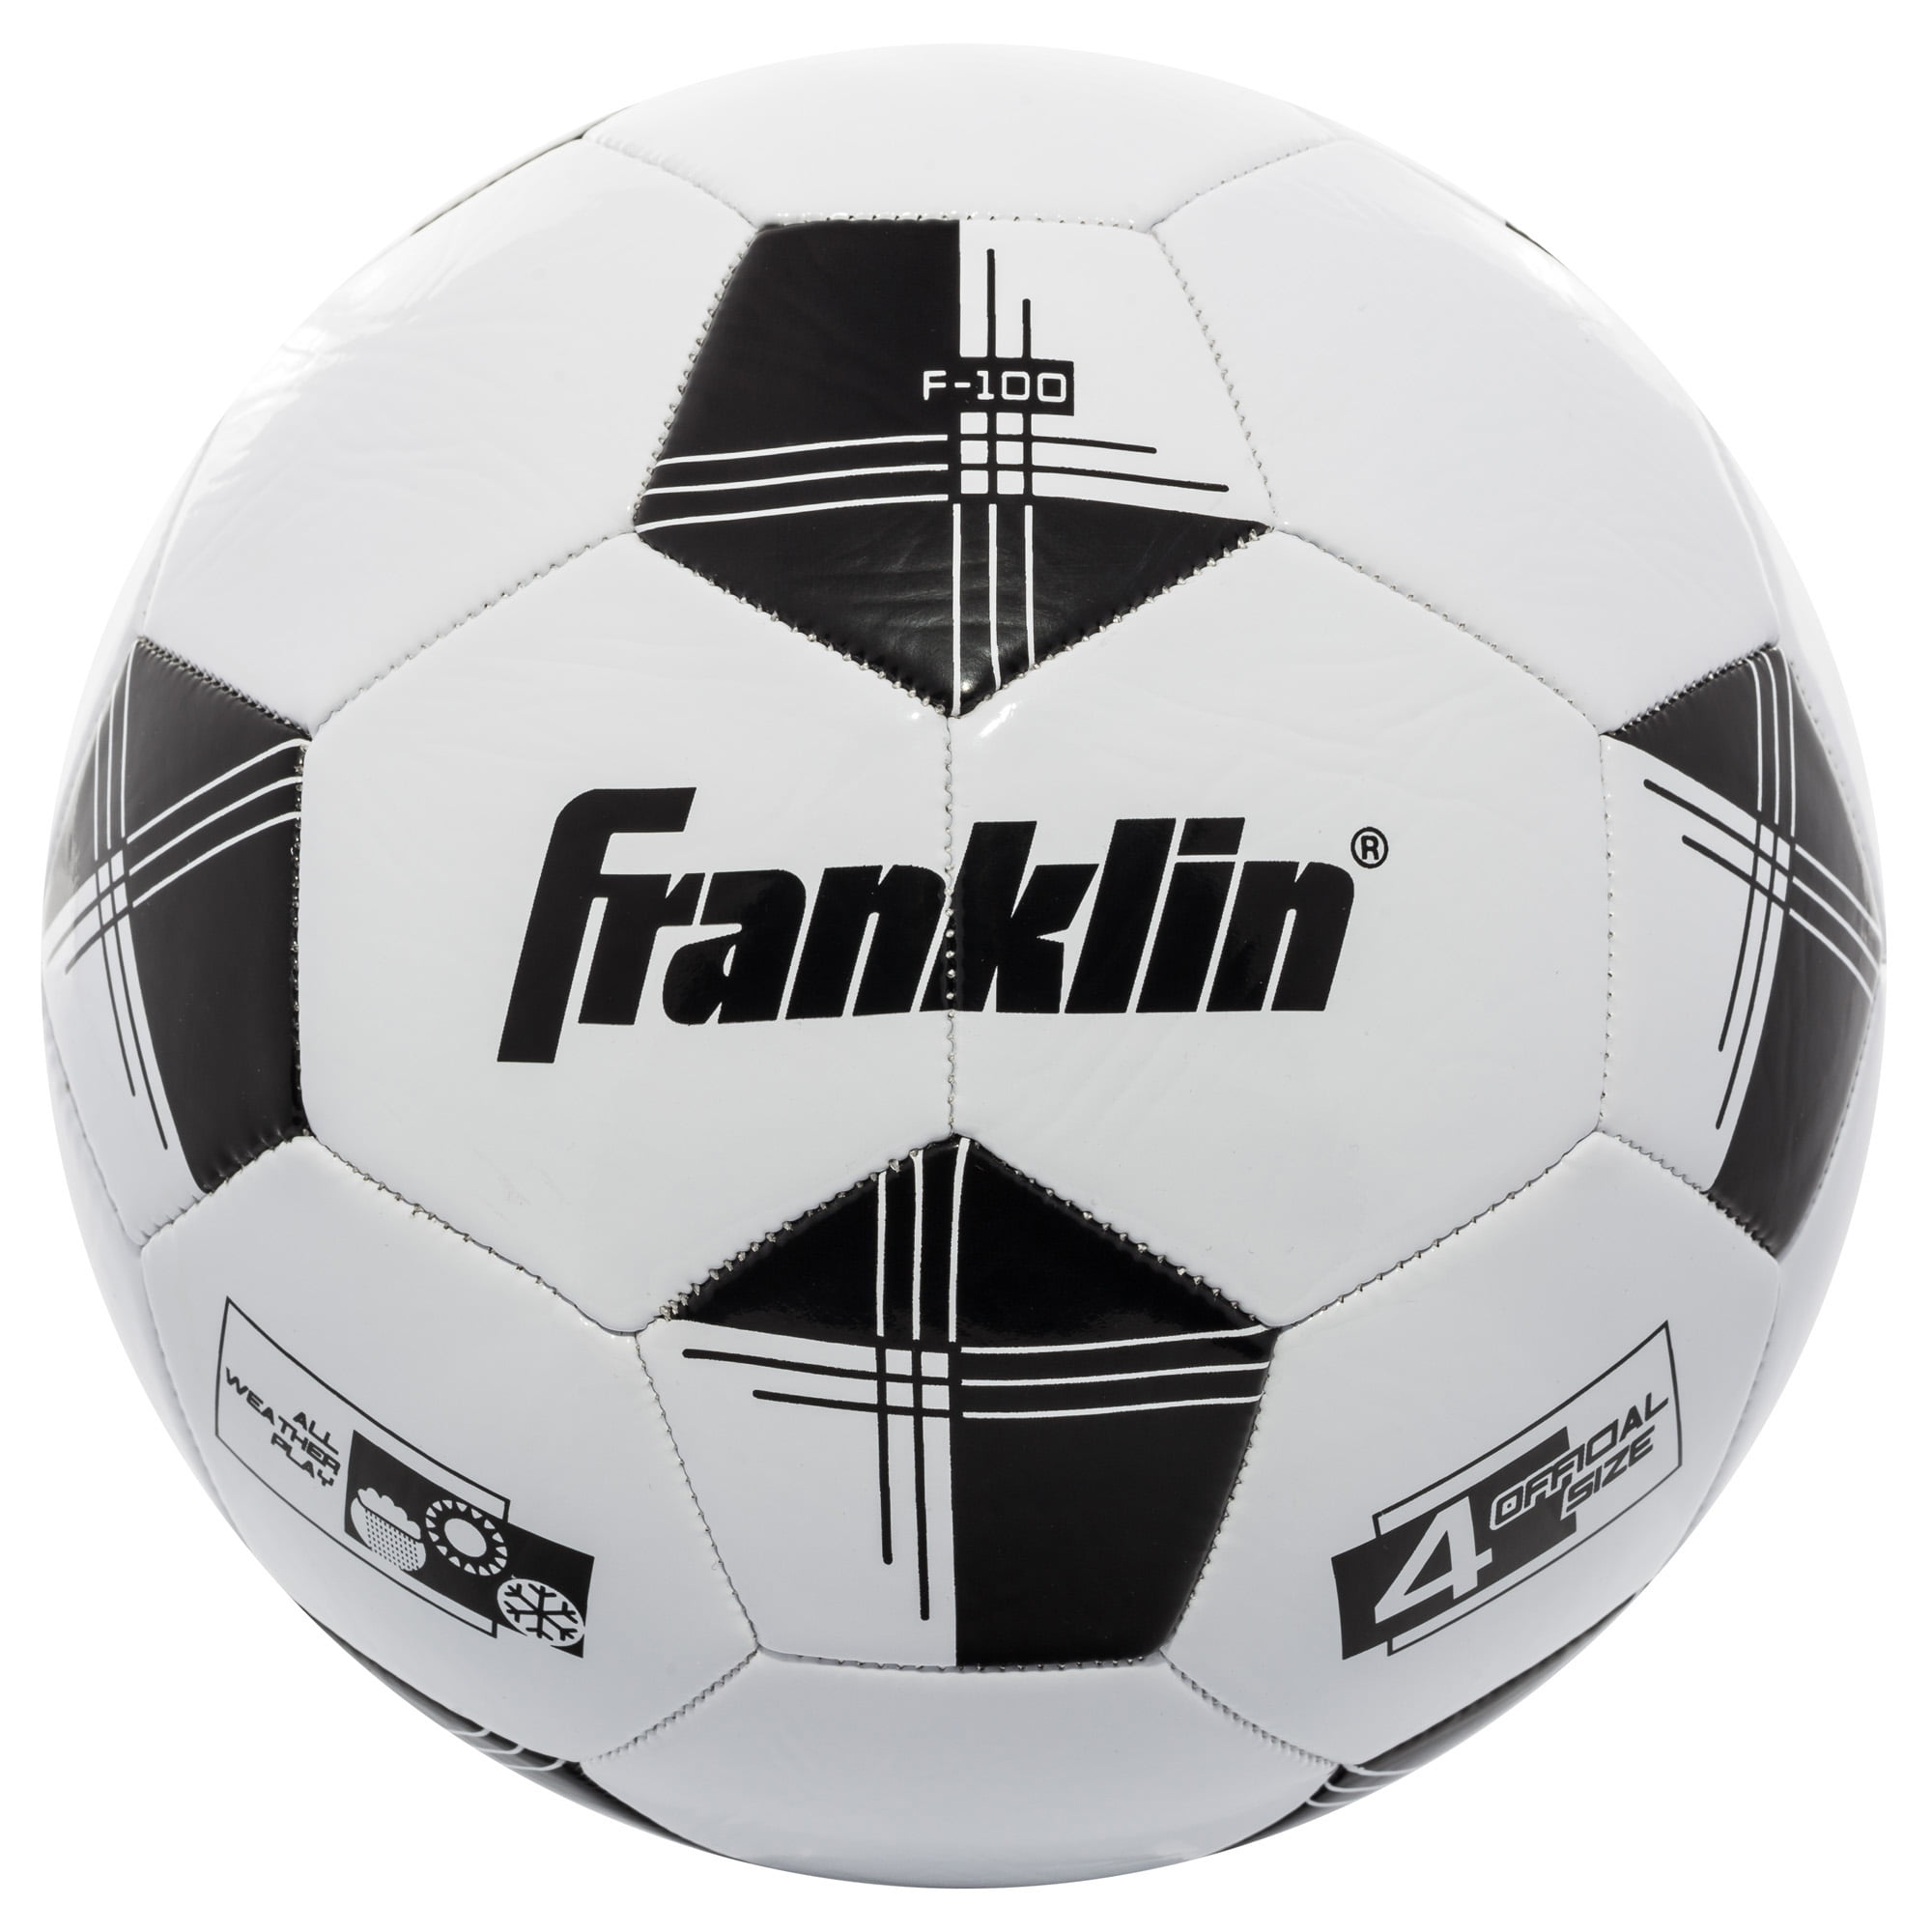 Franklin sports competition 100 soccer ball size 4 black and white walmart com